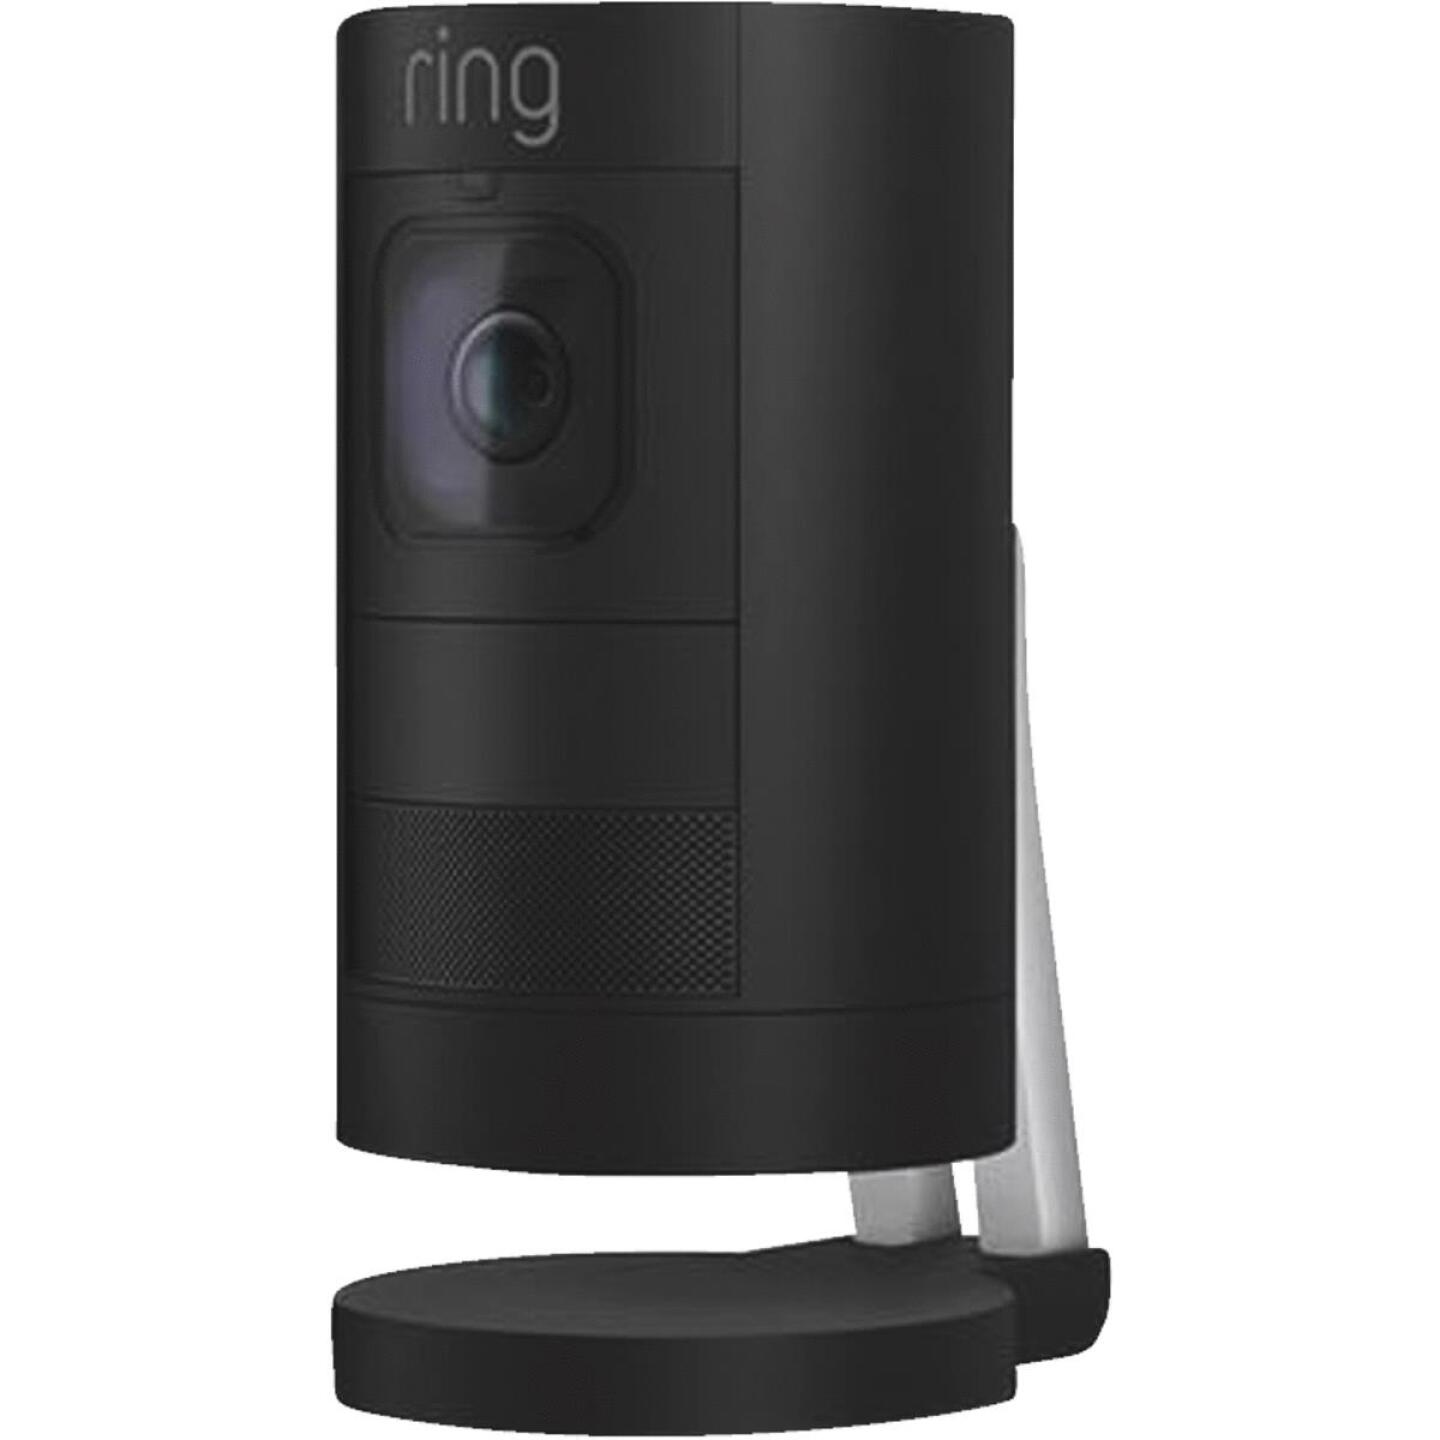 Ring Stick Up Cam Battery Operated Indoor/Outdoor Black Security Camera Image 2